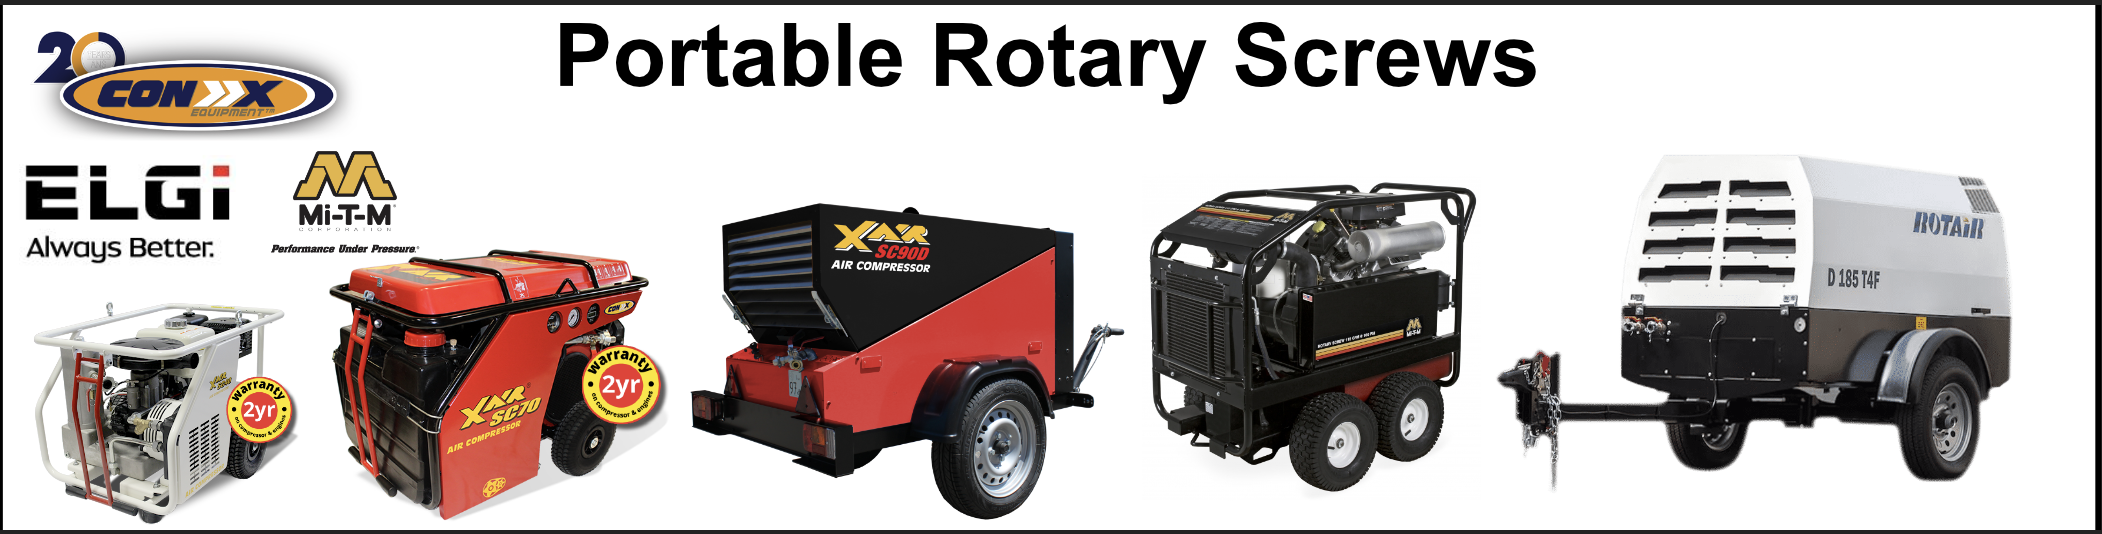 portable-rotary-banner.png